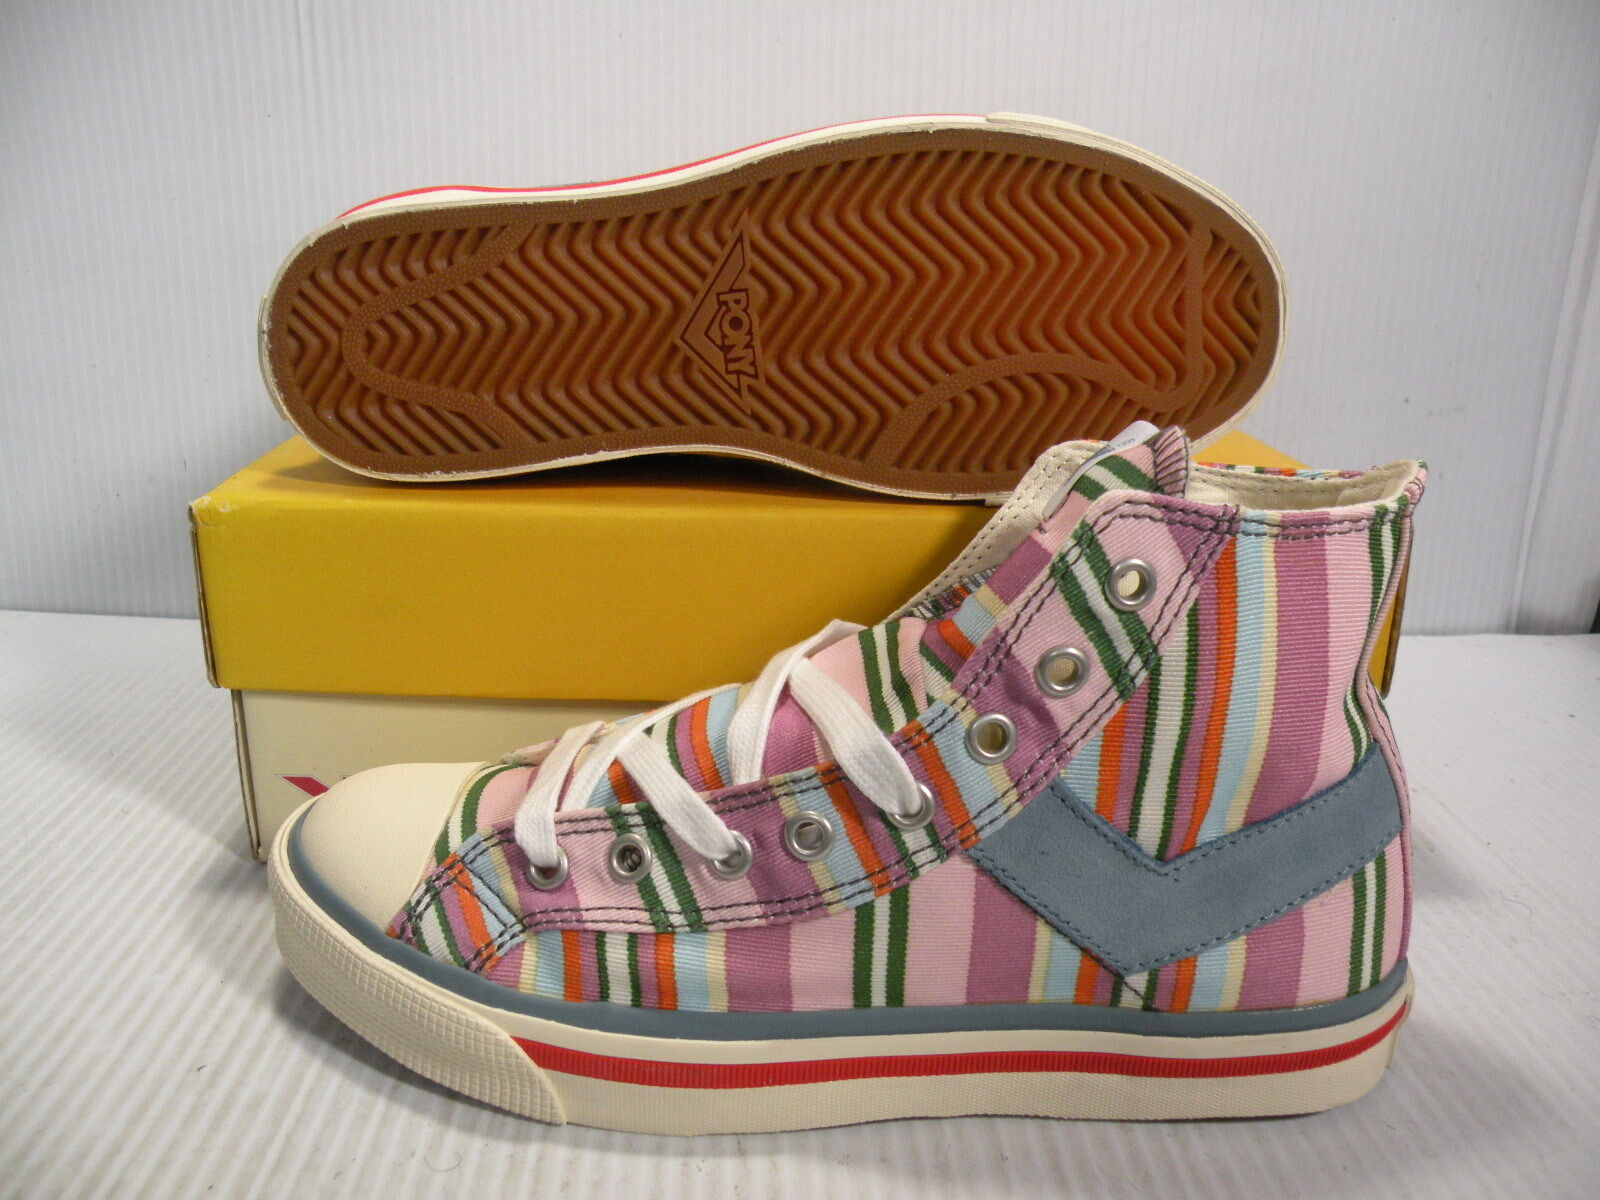 PONY SHOOTER '78 HIGH CHEVRON SNEAKERS WOMEN SHOES MIX 1781 SIZE 7 NEW